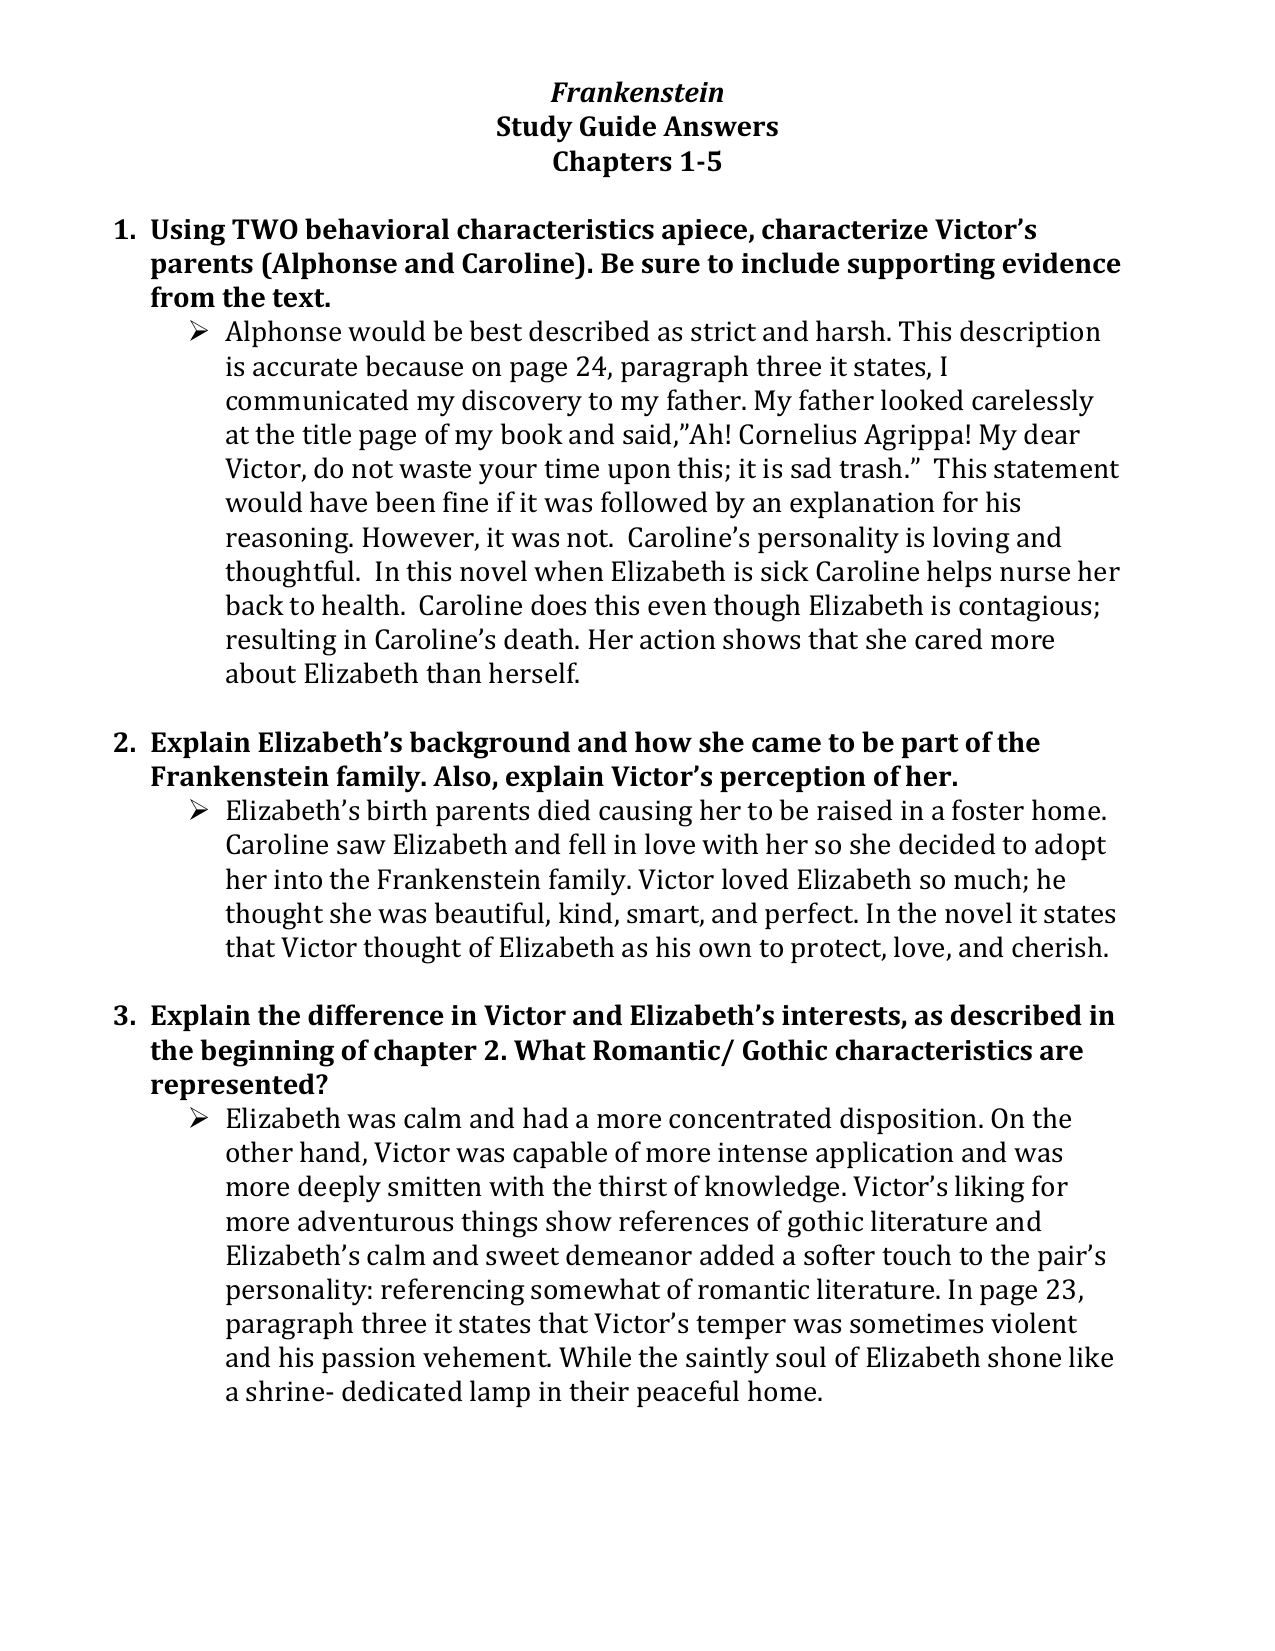 frankenstein study guide answers chapters 1 rh studylib net frankenstein study guide answers letters 1-4 frankenstein study guide answers pdf